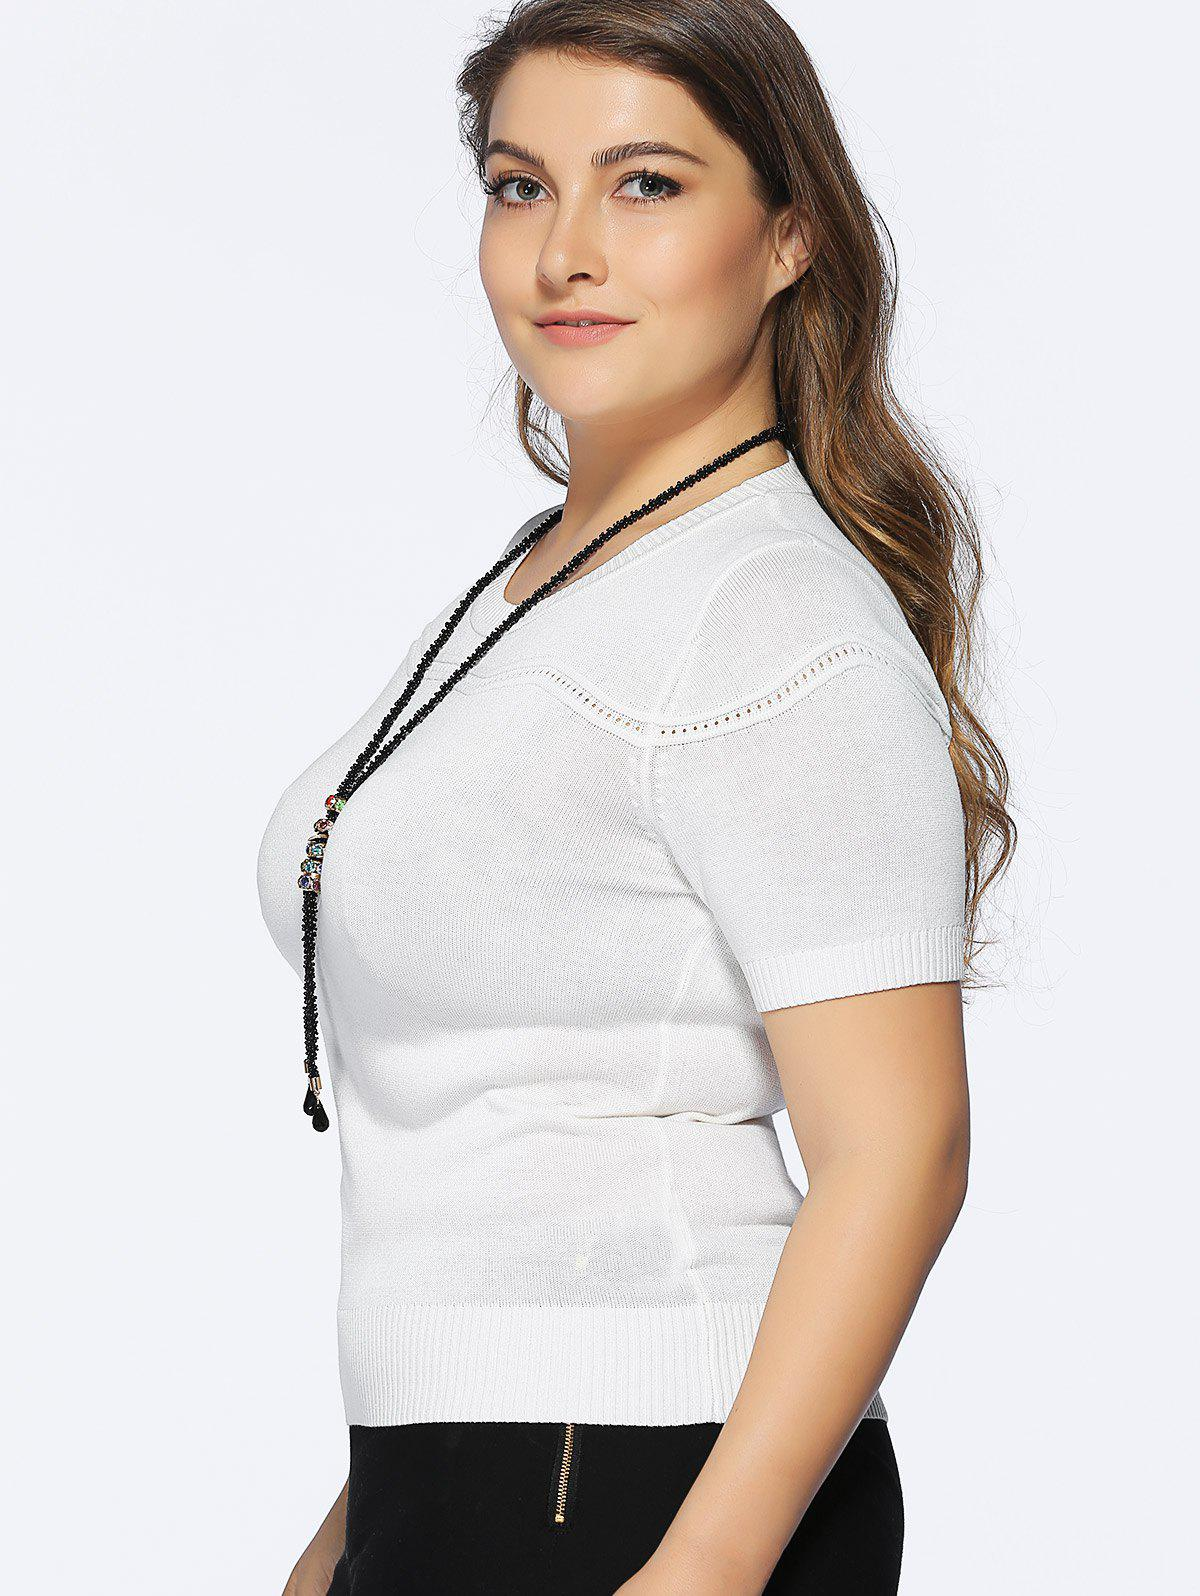 Chic Plus Size Spliced Slimming Solid Color Women's Knitwear - WHITE ONE SIZE(FIT SIZE L TO 3XL)